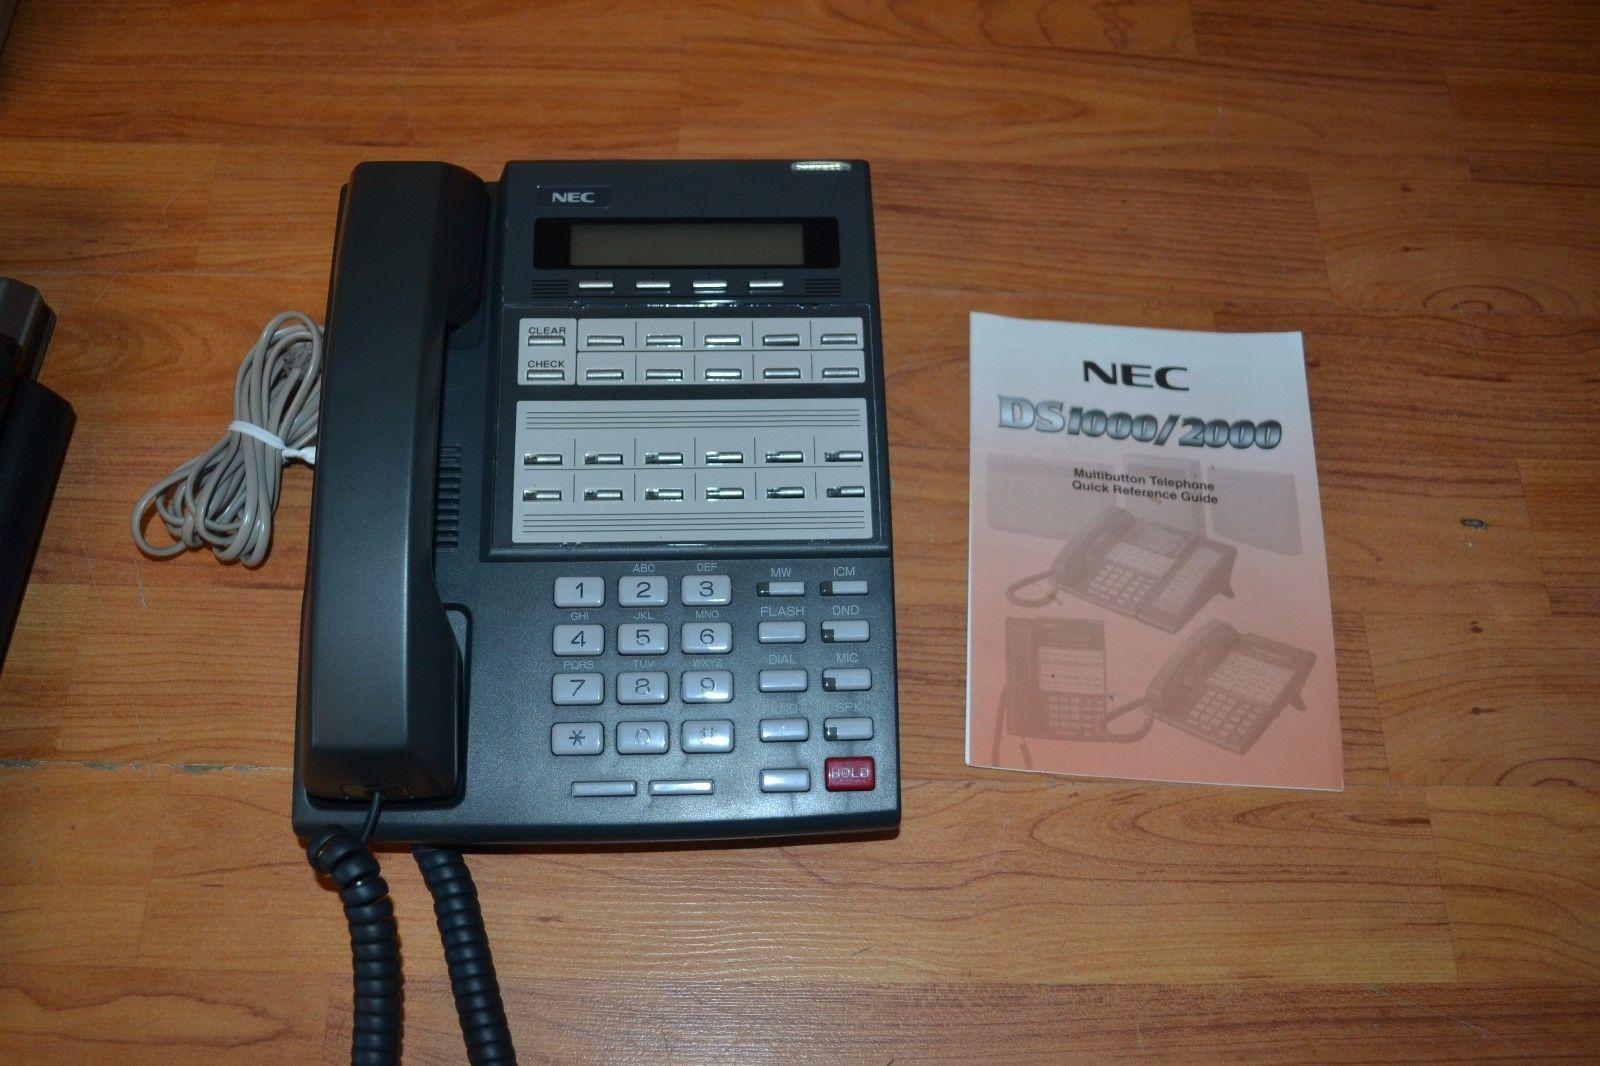 NEC DS1000 / 2000 22-BTN Display Telephone Tested and Working w/ Box & Cable